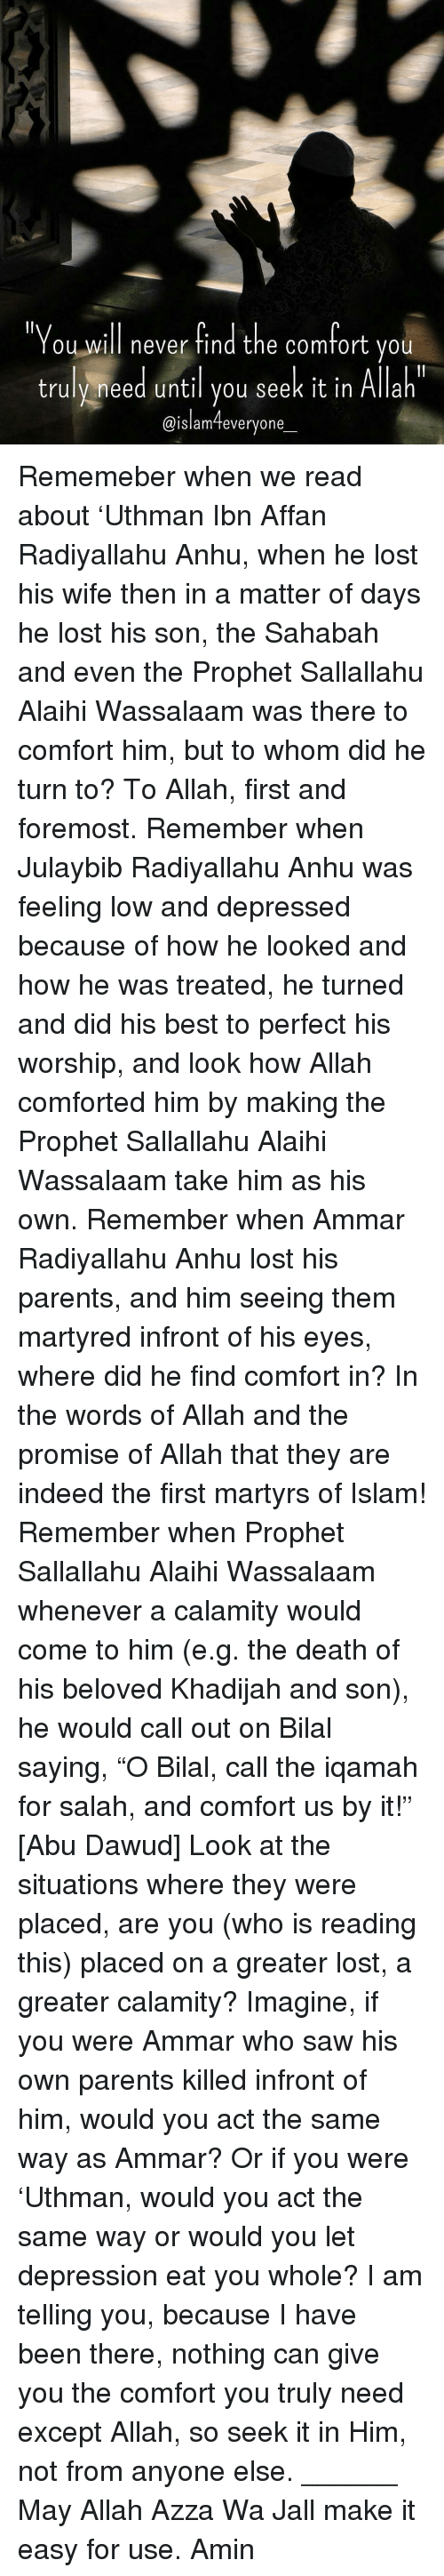 """bilal: """"You will never find the comfort you  truly need until you seek it in Allah  @islam everyone Rememeber when we read about 'Uthman Ibn Affan Radiyallahu Anhu, when he lost his wife then in a matter of days he lost his son, the Sahabah and even the Prophet Sallallahu Alaihi Wassalaam was there to comfort him, but to whom did he turn to? To Allah, first and foremost. Remember when Julaybib Radiyallahu Anhu was feeling low and depressed because of how he looked and how he was treated, he turned and did his best to perfect his worship, and look how Allah comforted him by making the Prophet Sallallahu Alaihi Wassalaam take him as his own. Remember when Ammar Radiyallahu Anhu lost his parents, and him seeing them martyred infront of his eyes, where did he find comfort in? In the words of Allah and the promise of Allah that they are indeed the first martyrs of Islam! Remember when Prophet Sallallahu Alaihi Wassalaam whenever a calamity would come to him (e.g. the death of his beloved Khadijah and son), he would call out on Bilal saying, """"O Bilal, call the iqamah for salah, and comfort us by it!"""" [Abu Dawud] Look at the situations where they were placed, are you (who is reading this) placed on a greater lost, a greater calamity? Imagine, if you were Ammar who saw his own parents killed infront of him, would you act the same way as Ammar? Or if you were 'Uthman, would you act the same way or would you let depression eat you whole? I am telling you, because I have been there, nothing can give you the comfort you truly need except Allah, so seek it in Him, not from anyone else. ______ May Allah Azza Wa Jall make it easy for use. Amin"""